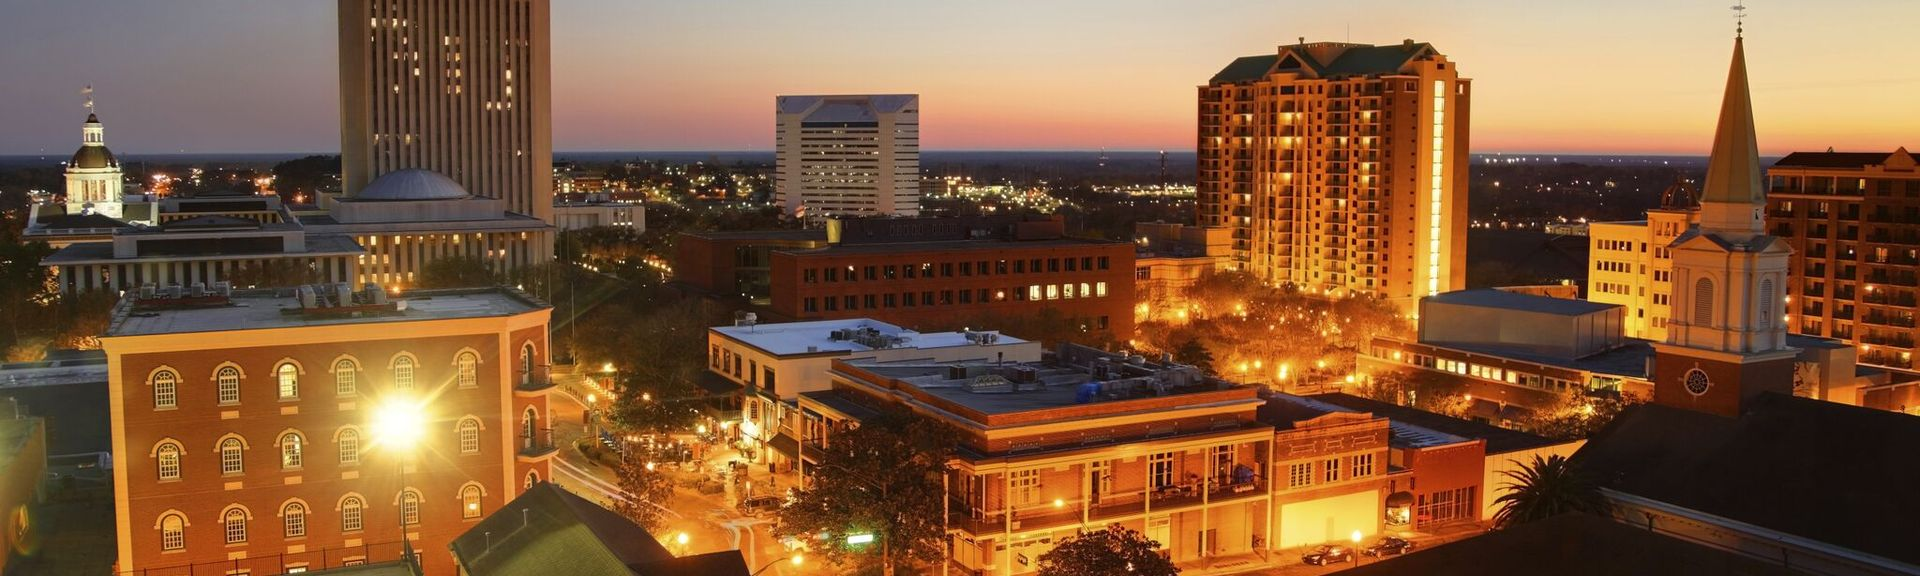 Tallahassee, Florida, United States of America